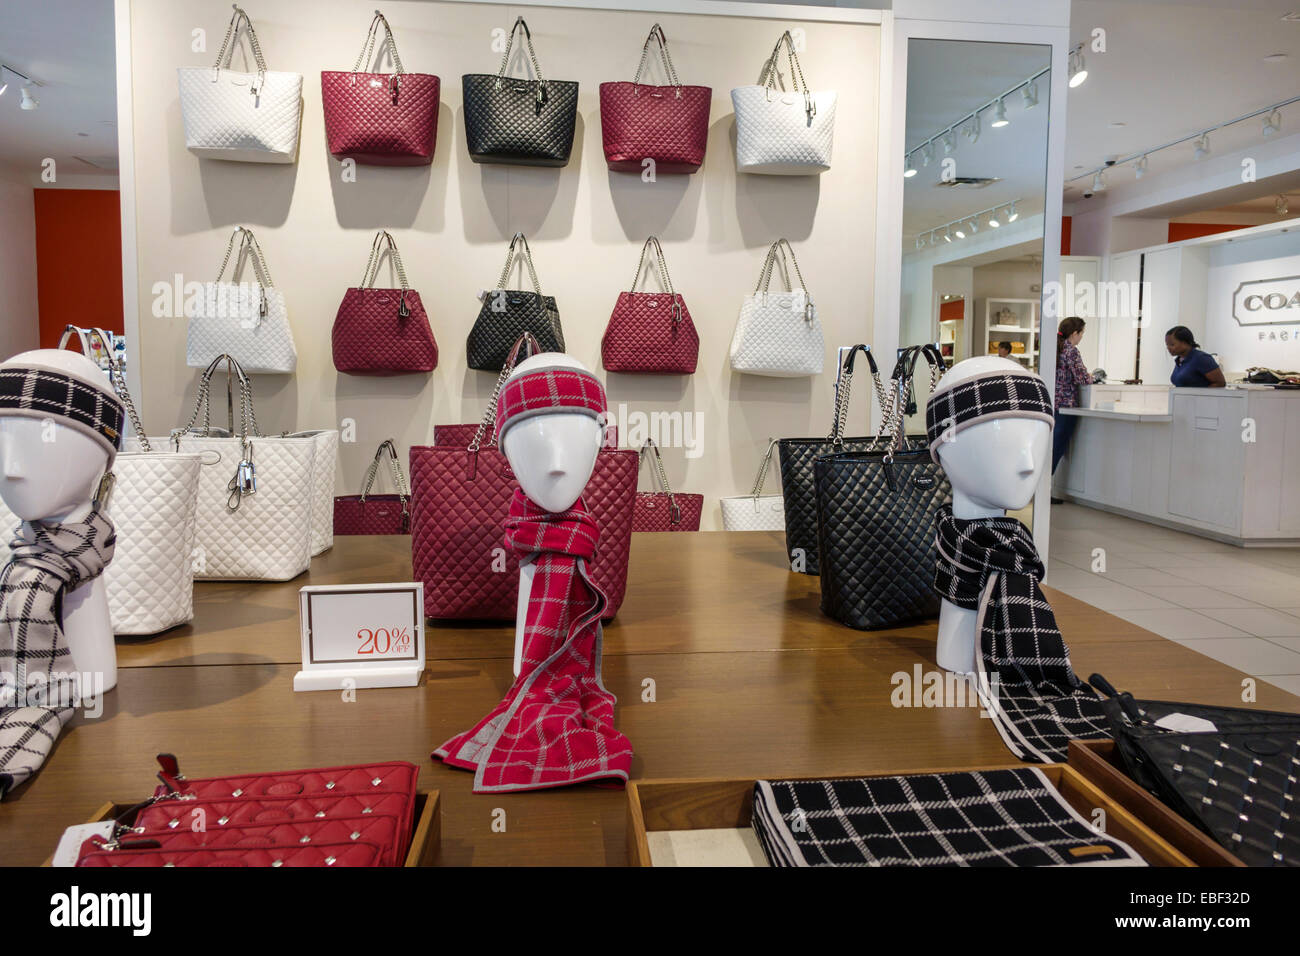 786199f020 Orlando Florida Premium Outlets shopping Coach Factory leather goods  display sale women s handbags inside scarves